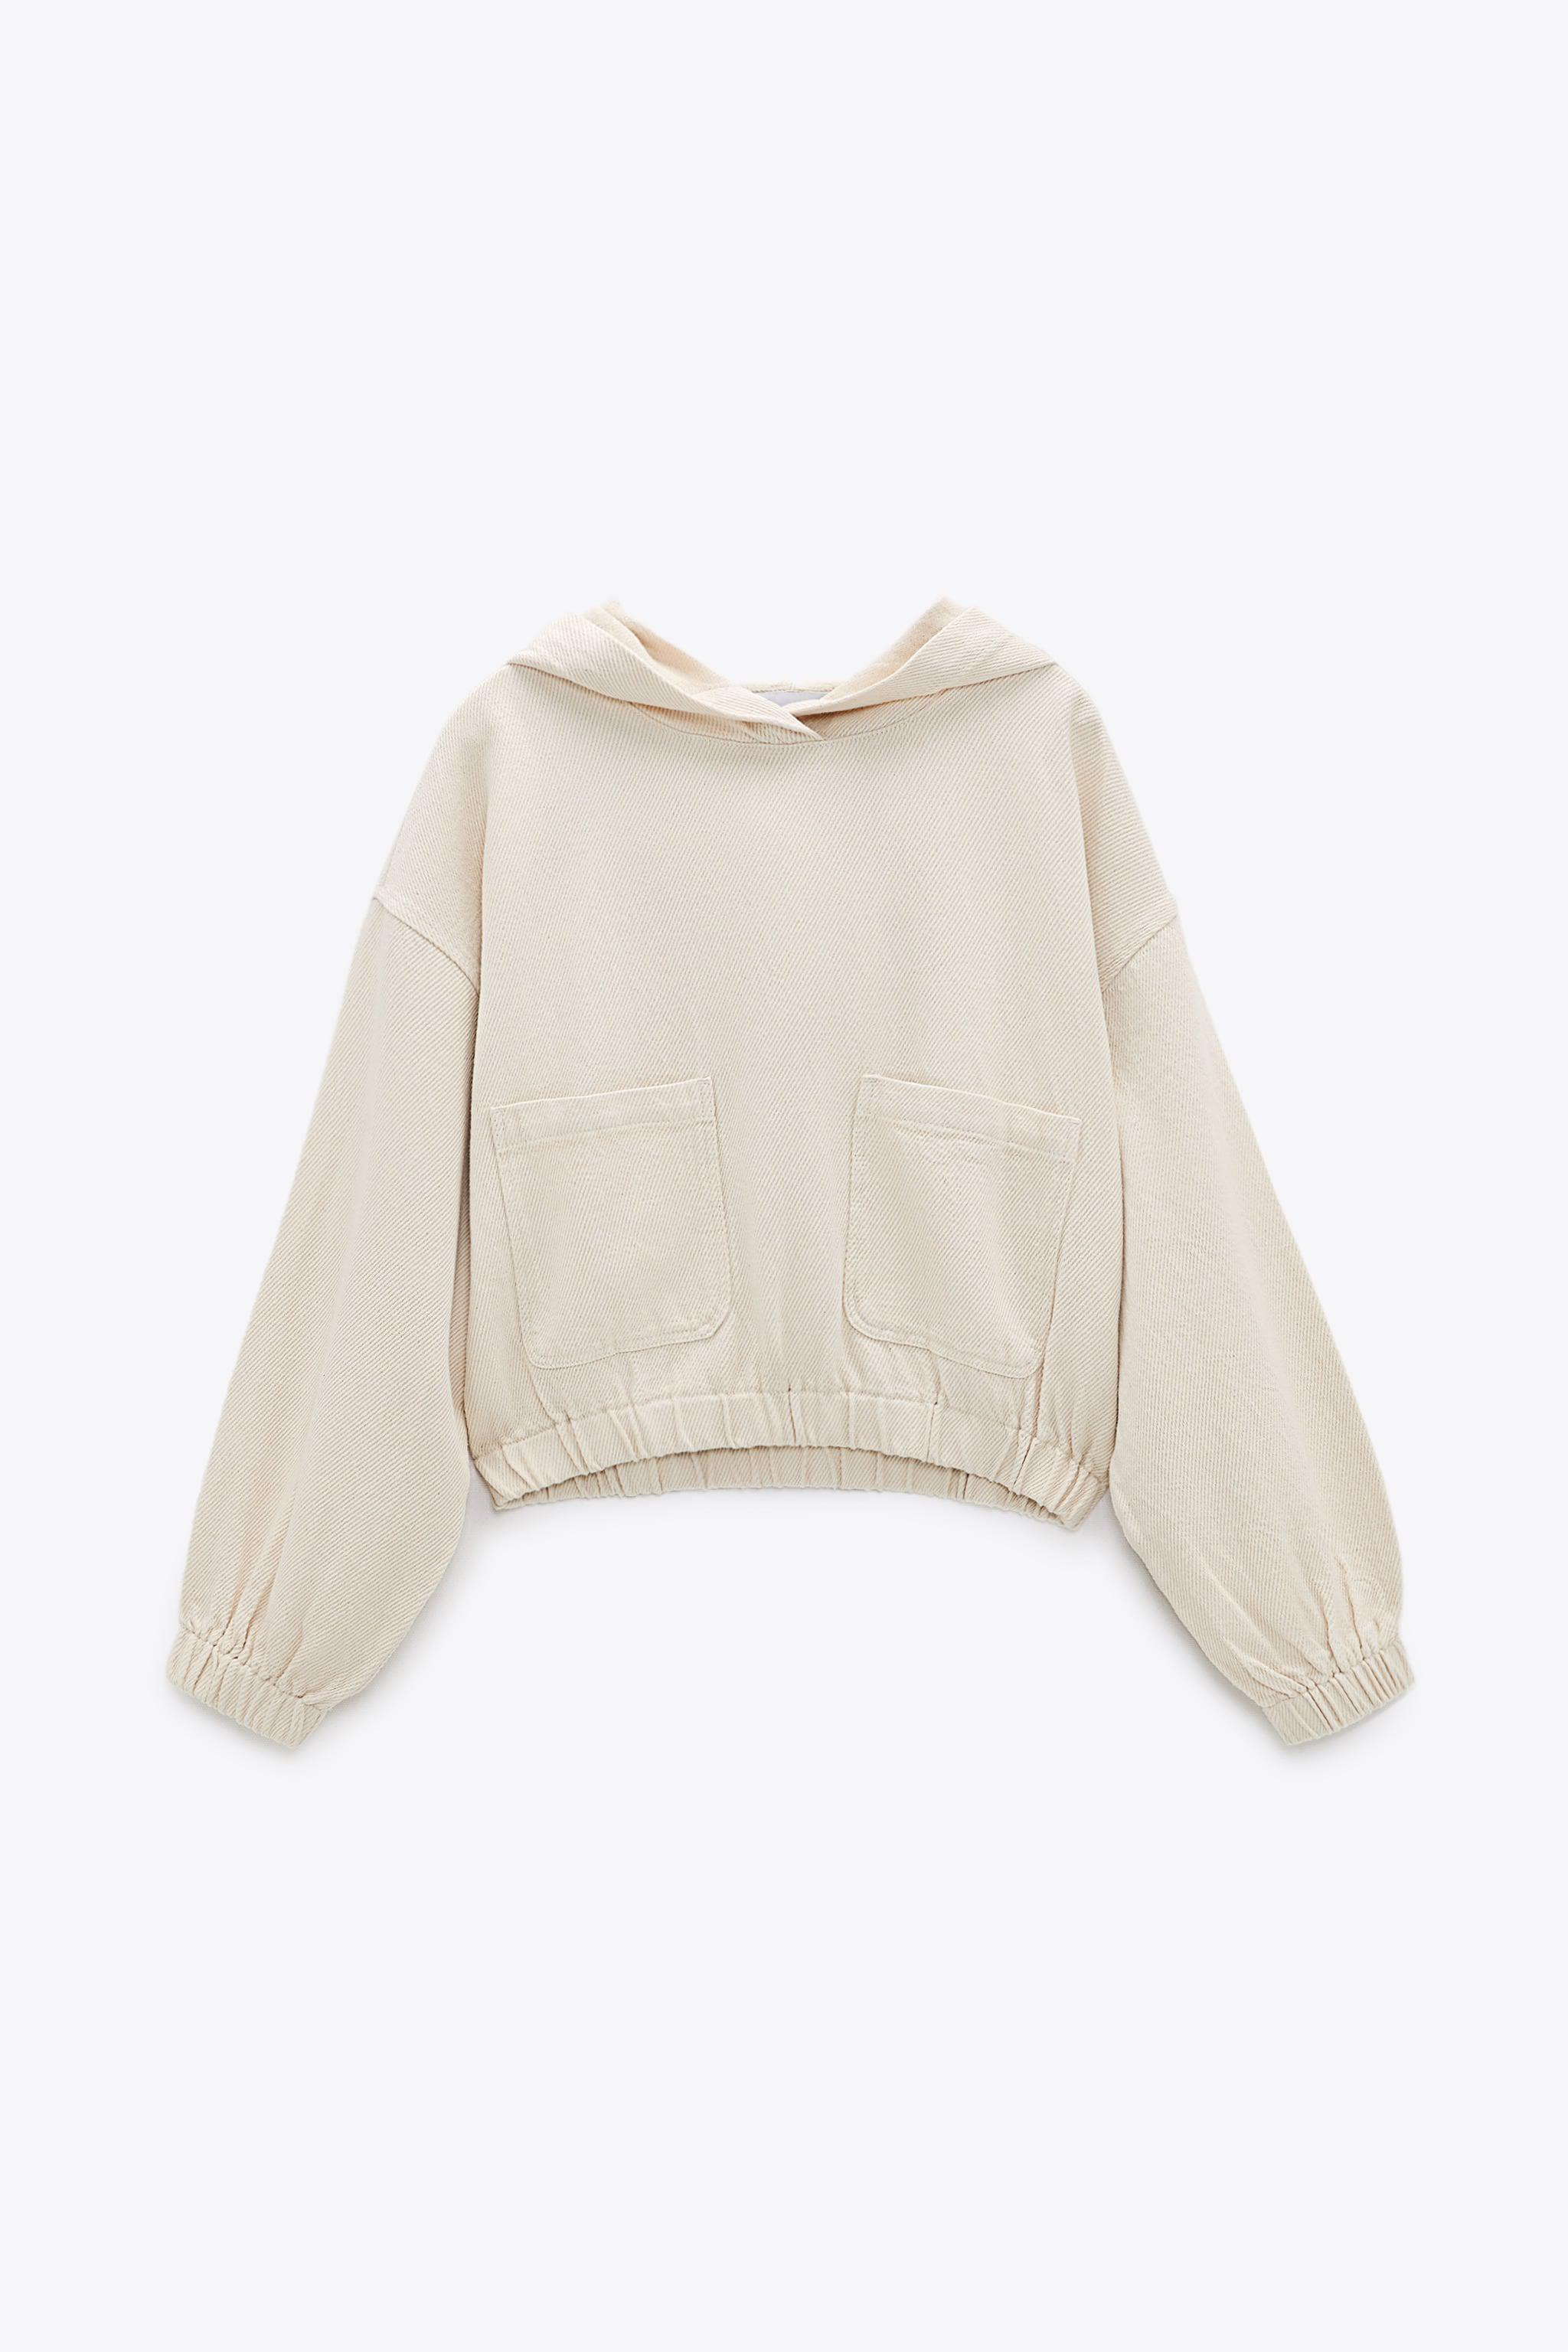 HOODED TWILL TOP 8